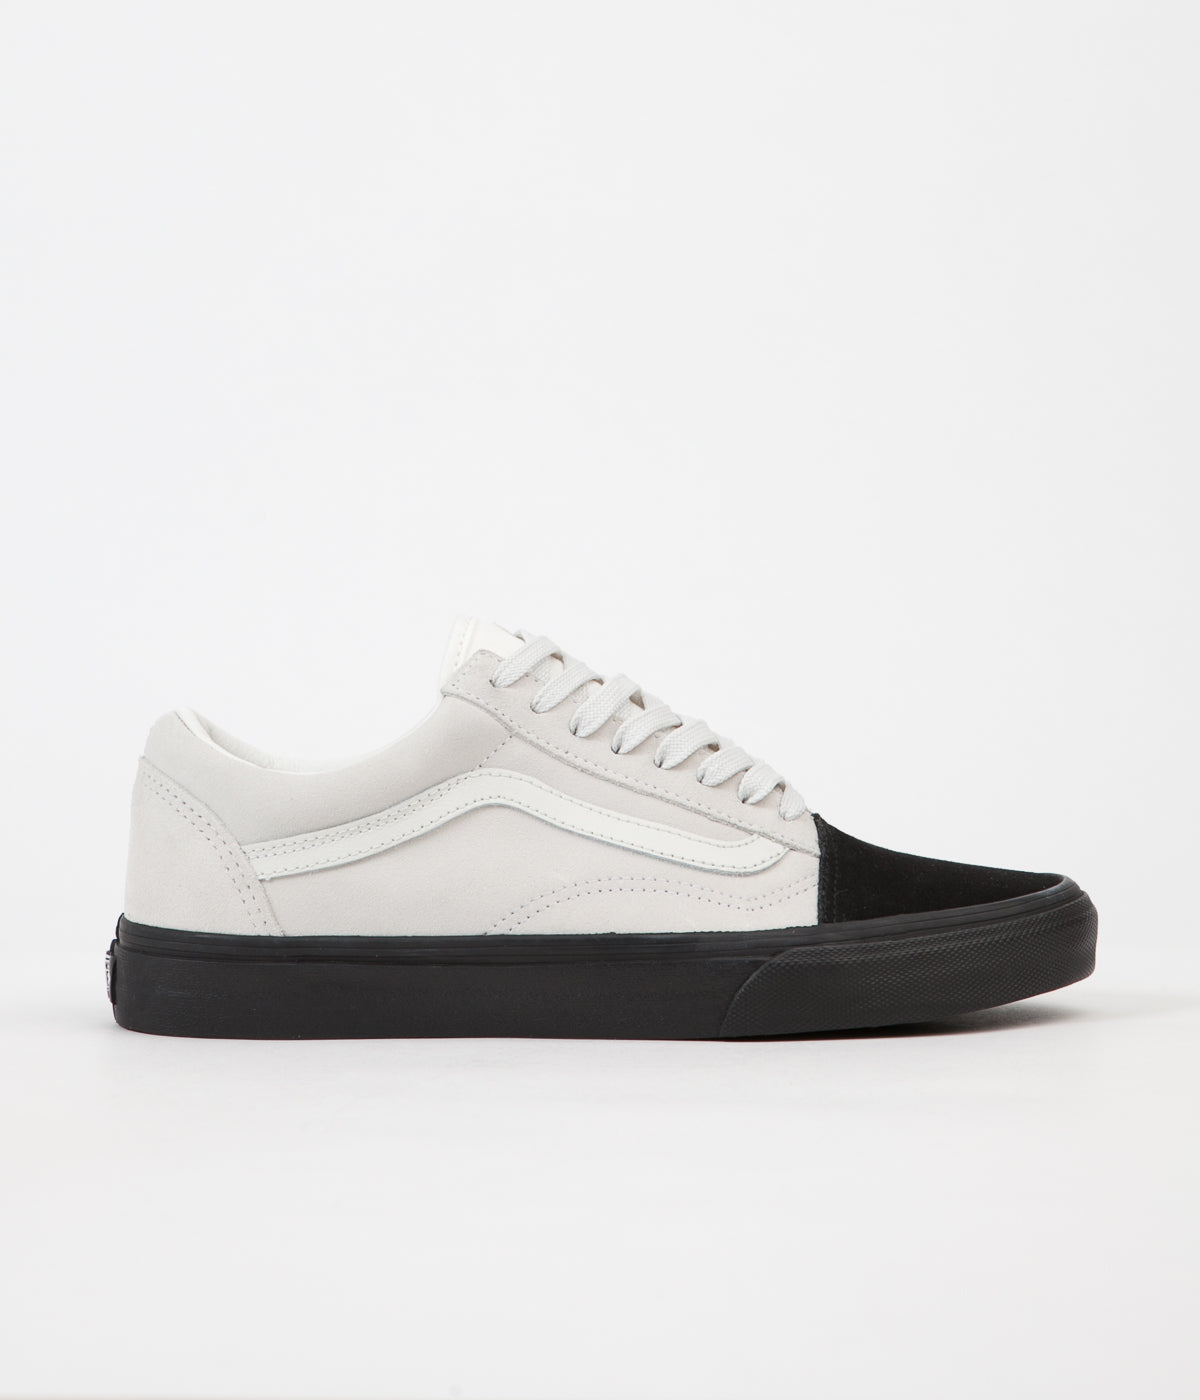 ... Vans Old Skool Shoes - (Native Suede) White   Black ... 060e2955e